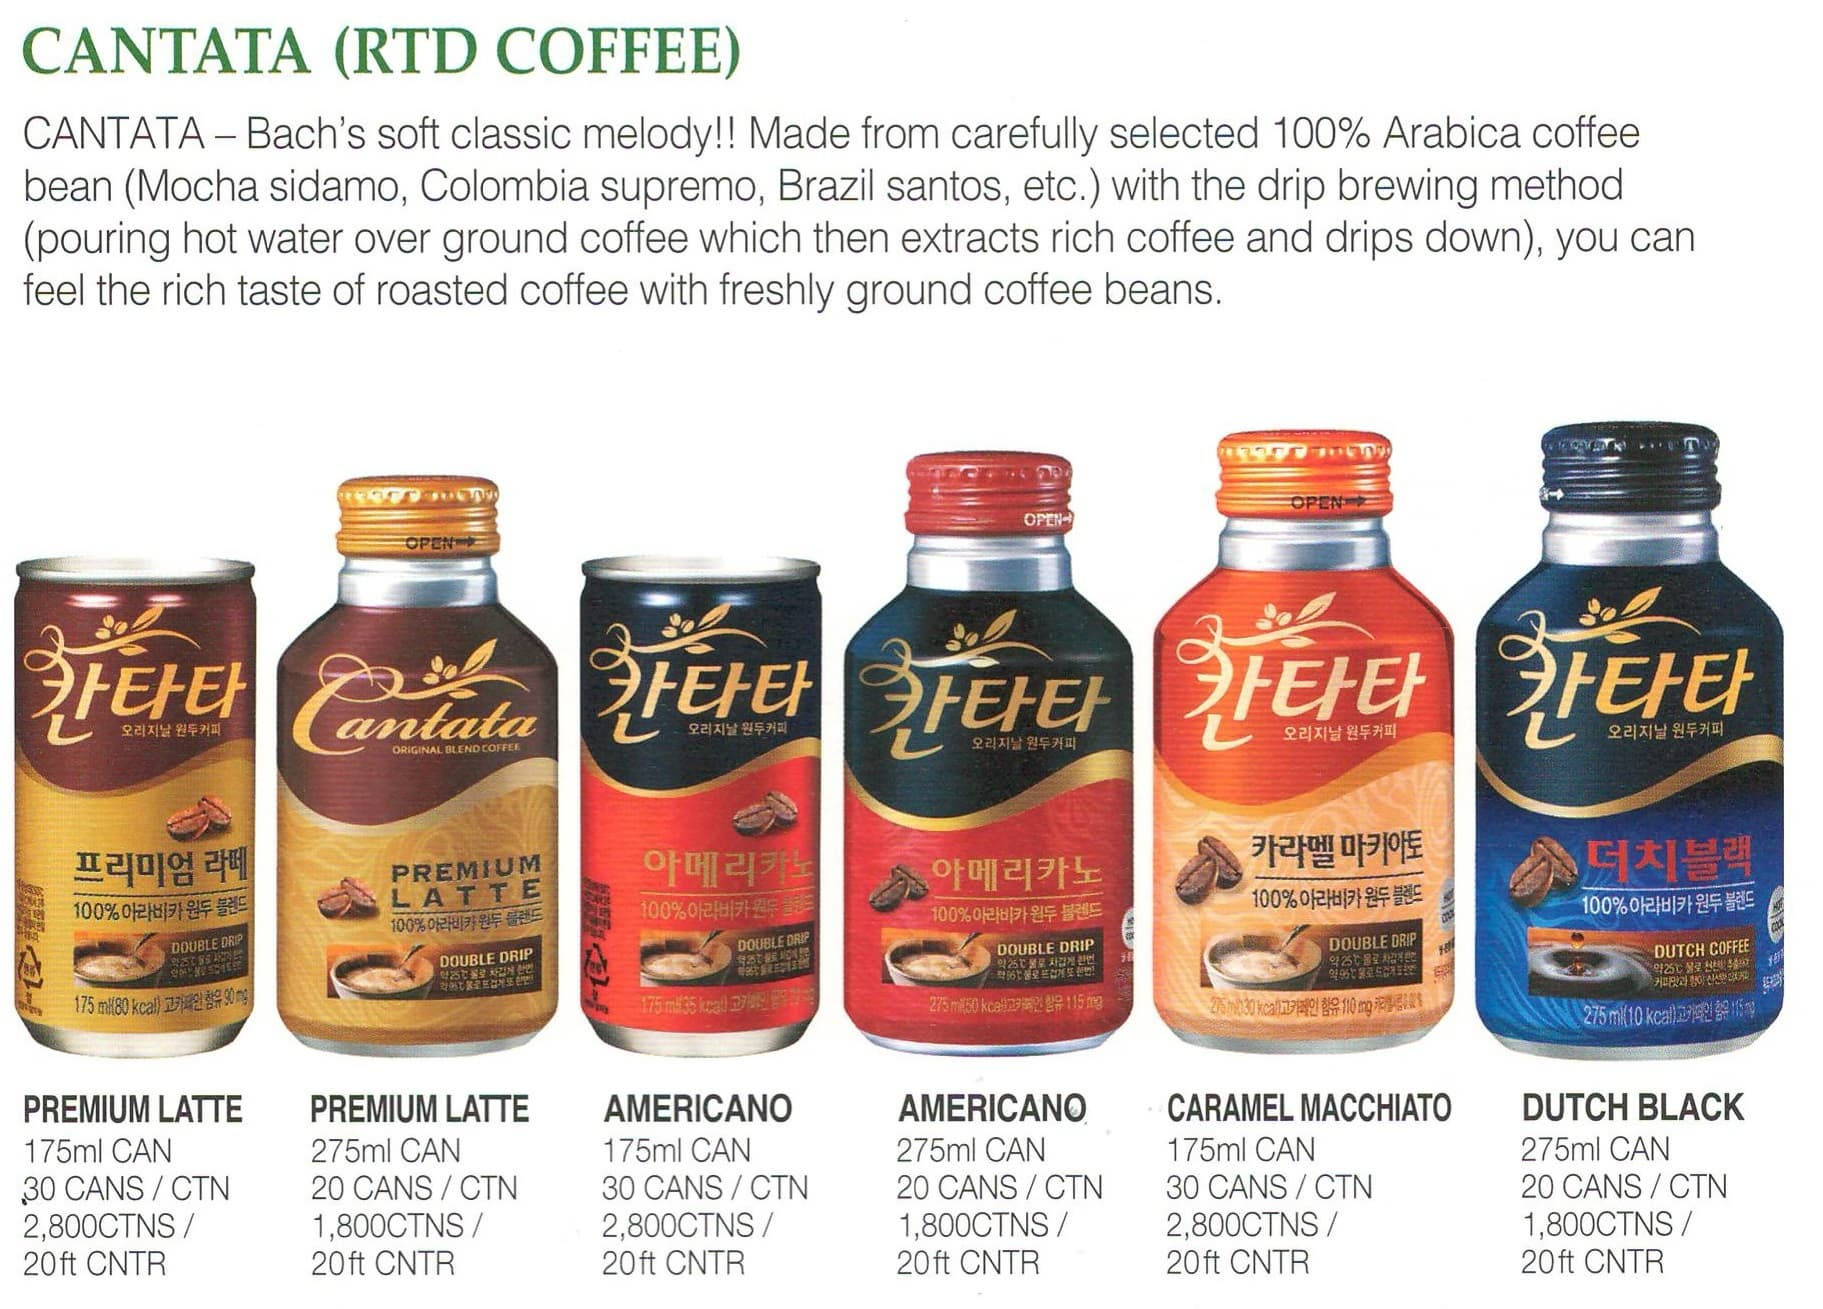 LOTTE RTD COFFEE_CANTATA_ LET_S BE_